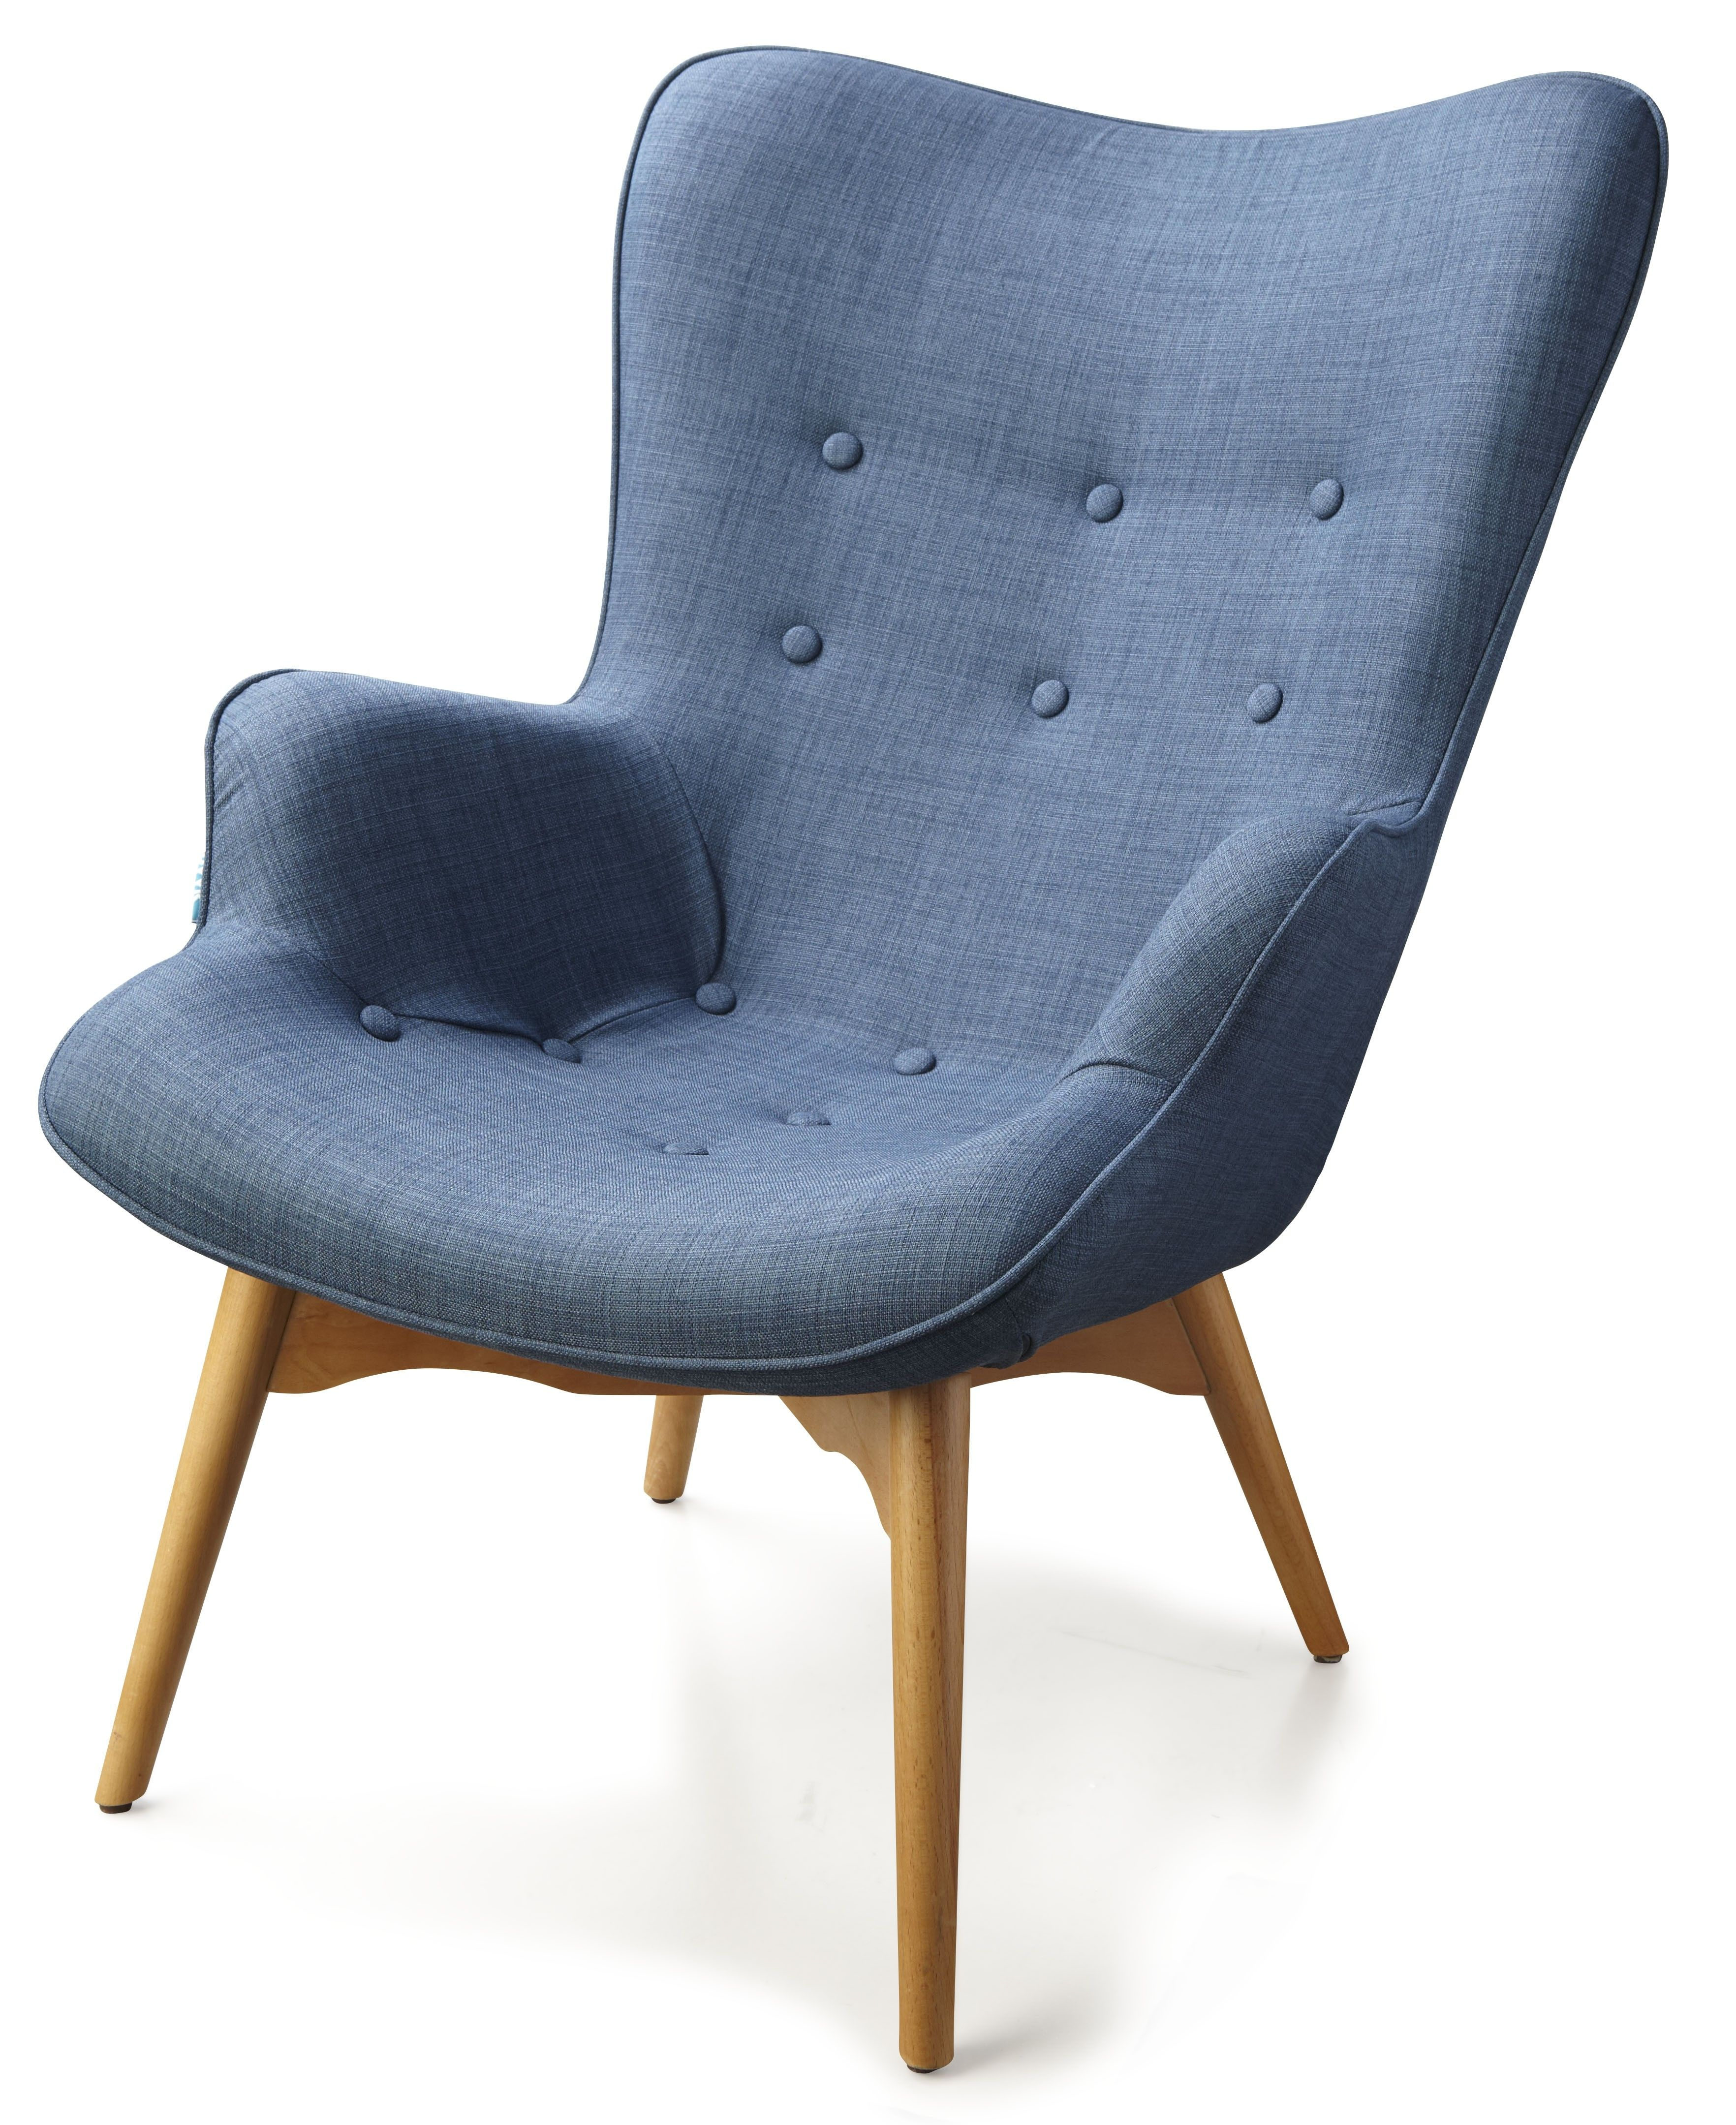 Barok Fauteuil Blauw.Fauteuil Blauw Trendy With Fauteuil Blauw Free Inosign Fauteuil